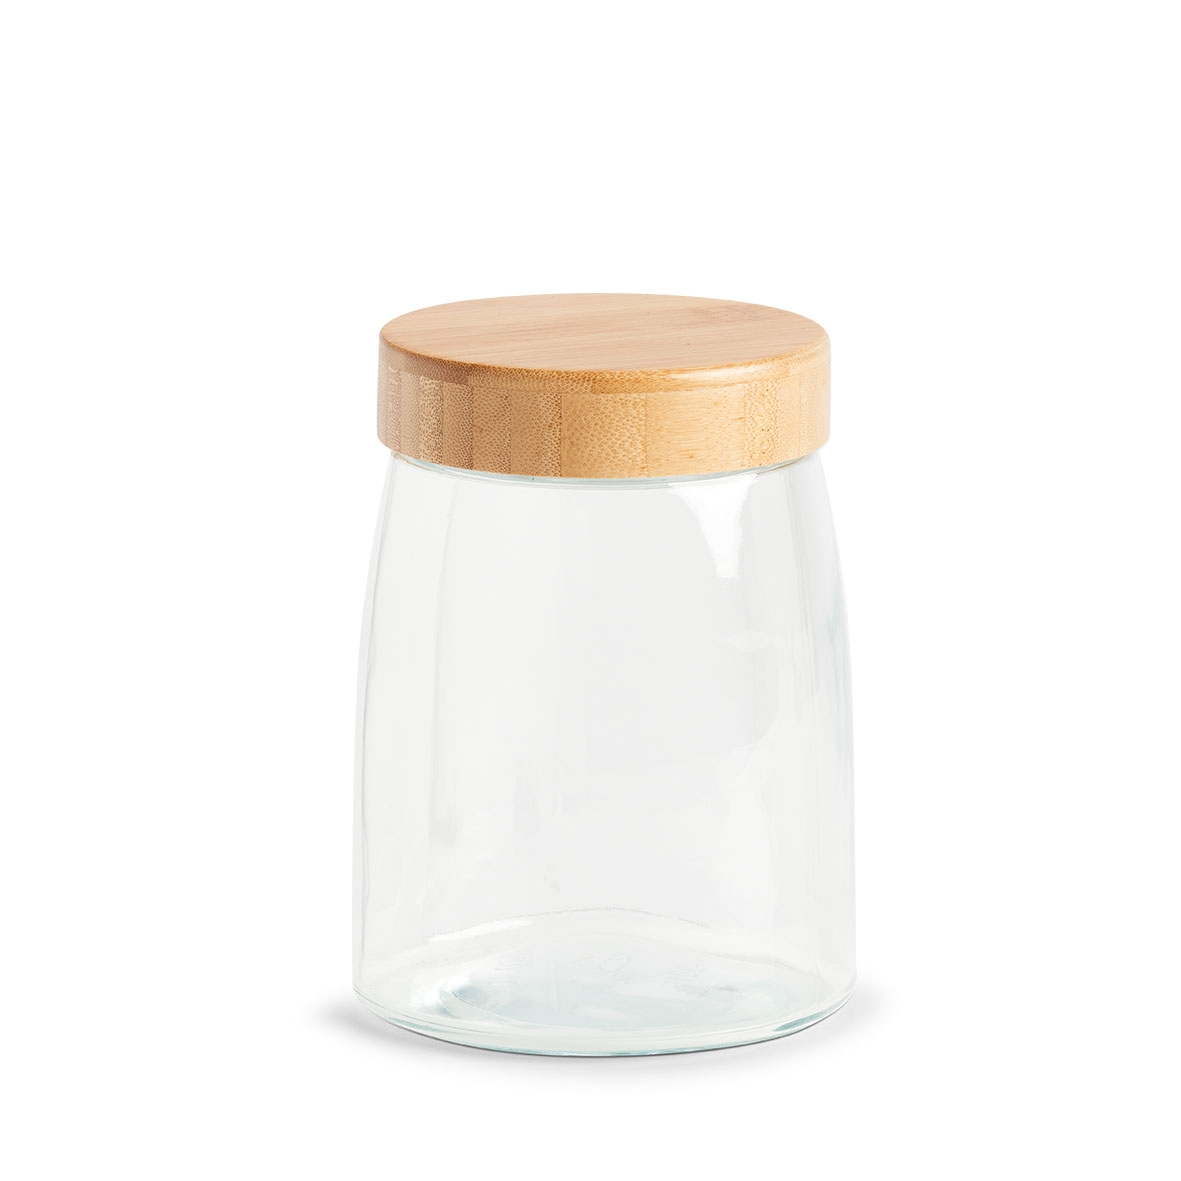 Recipient pentru depozitare cu capac, din sticla, Bamboo Medium Natural, 1300 ml, Ø12,5xH16,5 cm imagine